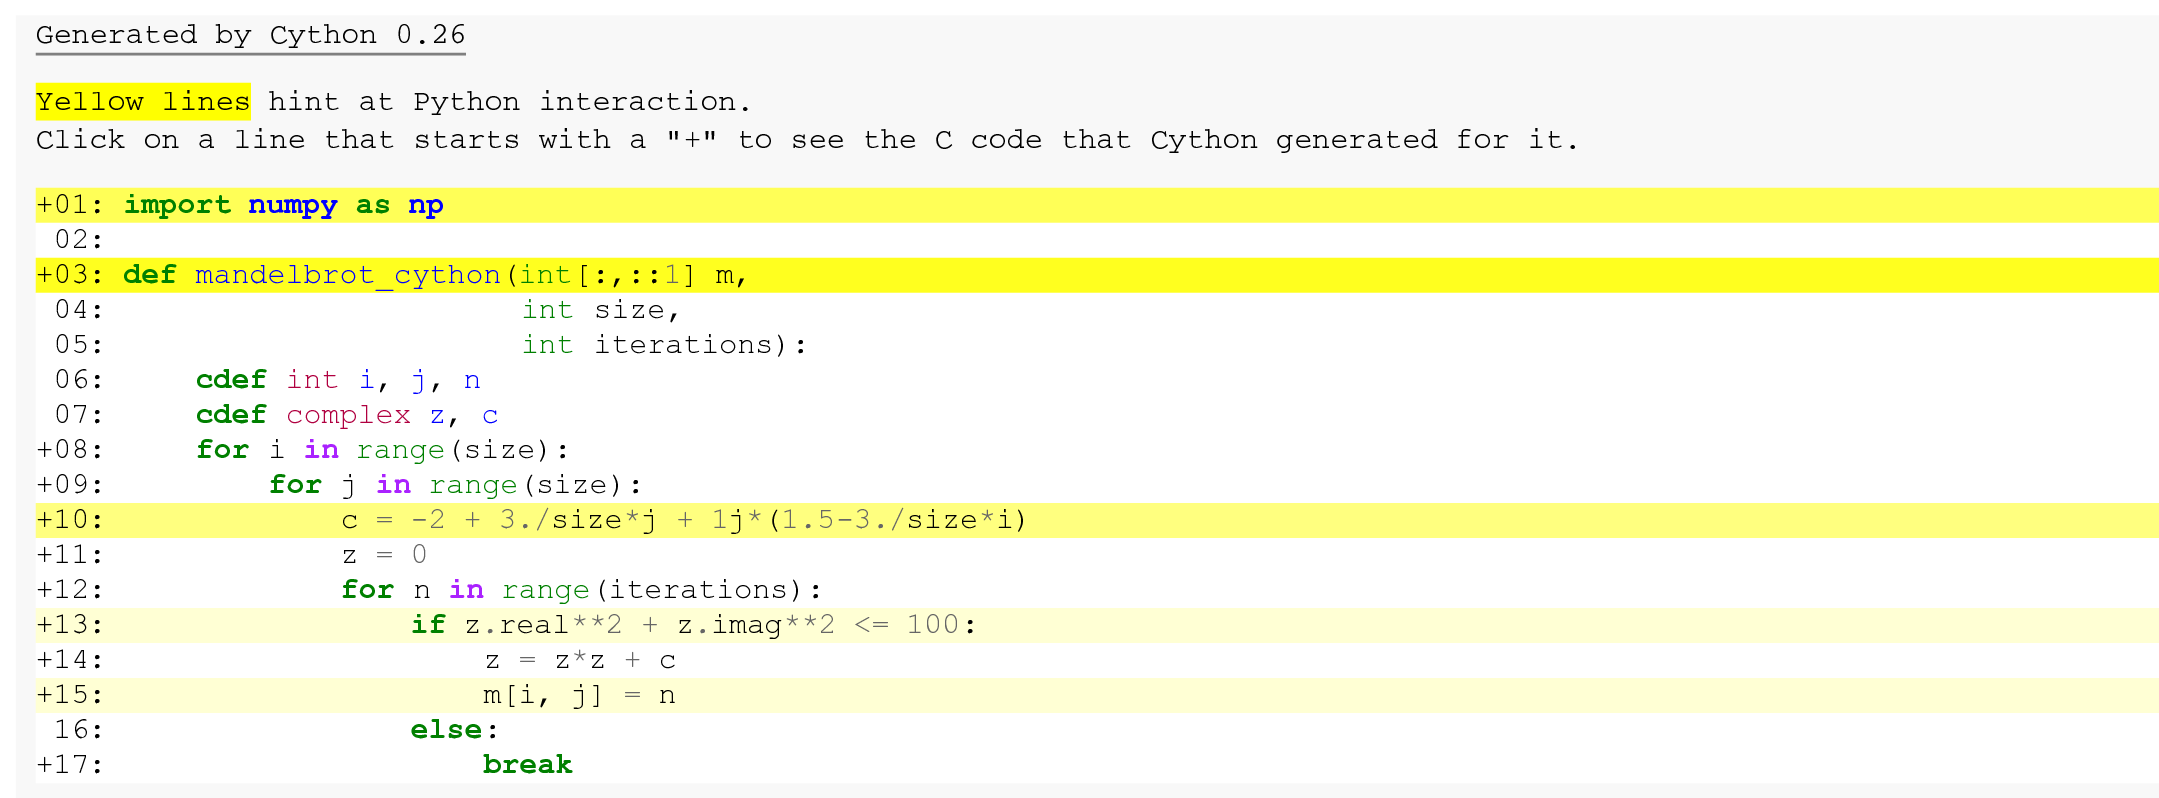 <IPython.core.display.HTML object>